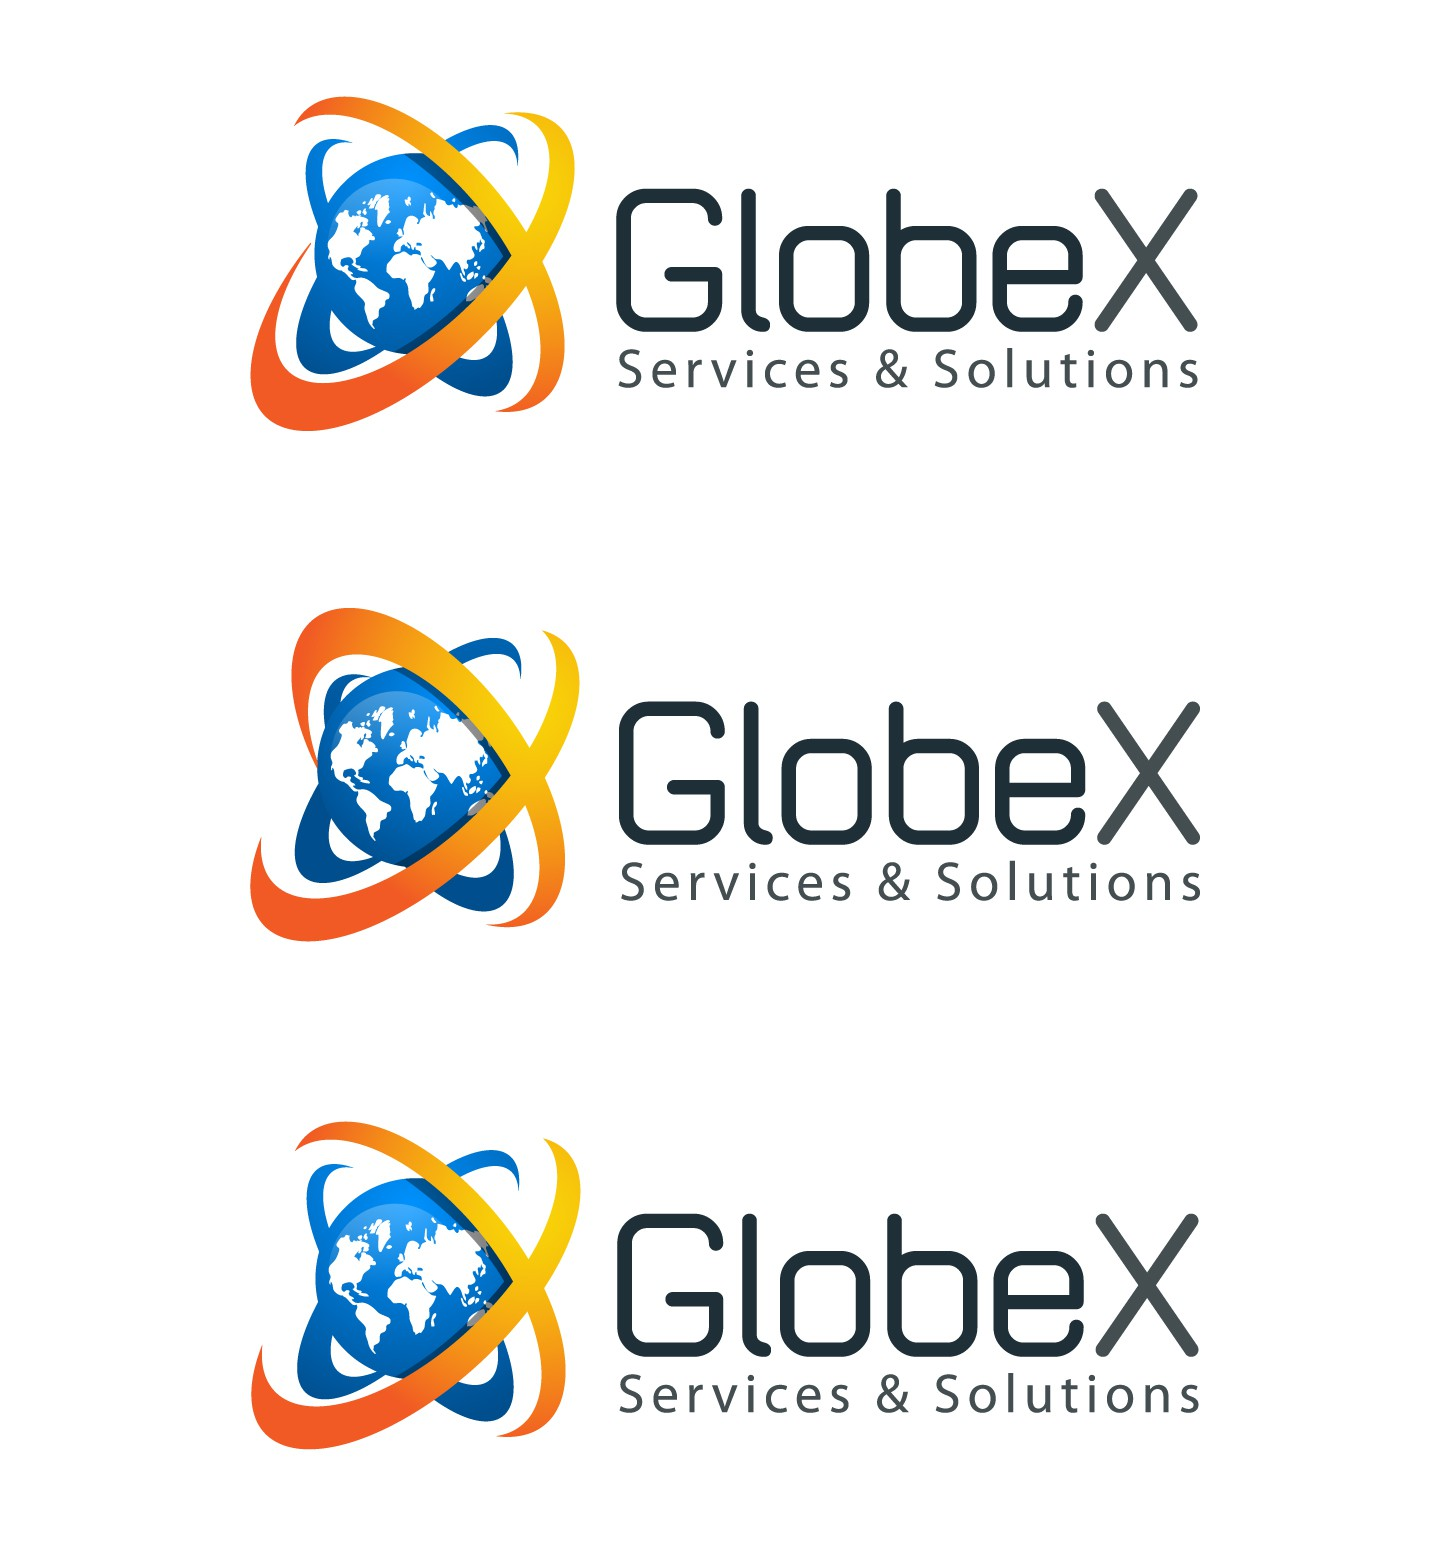 New logo wanted for GlobeX Services & Solutions LLC